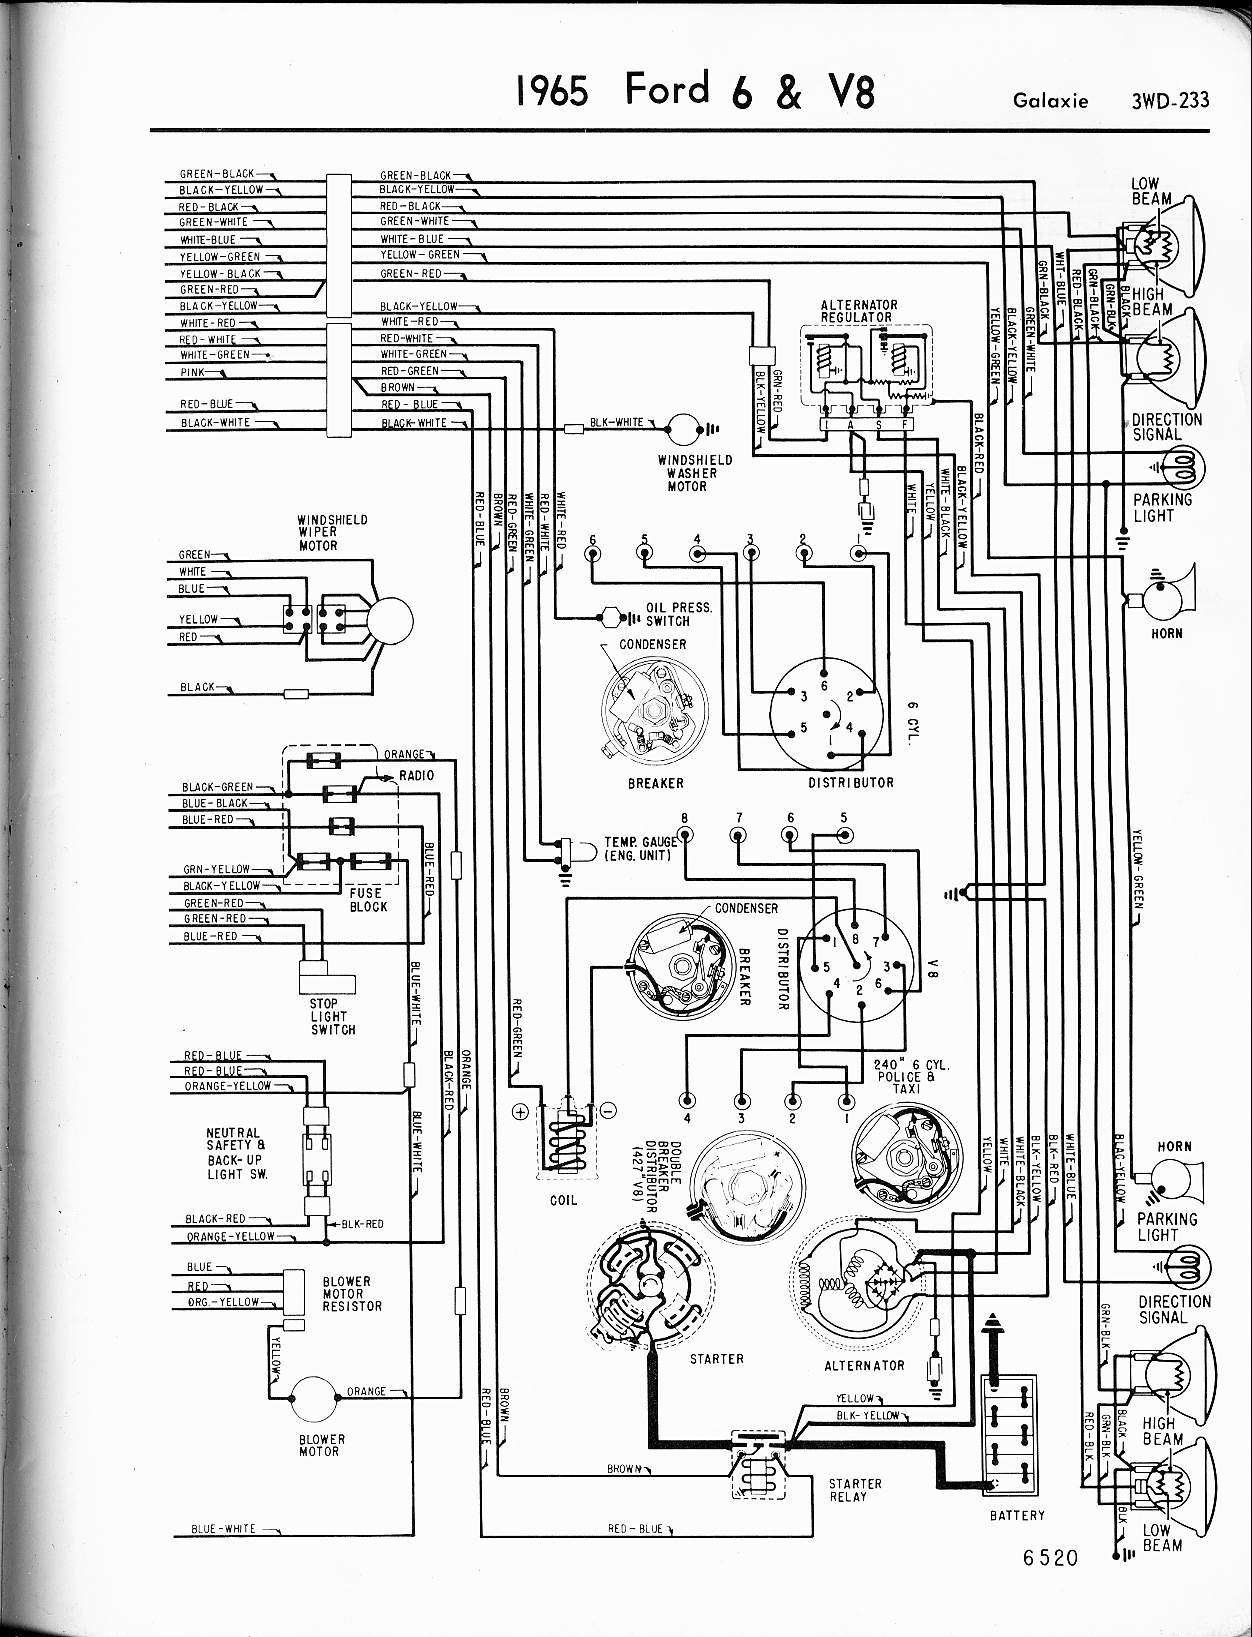 1965 ford wiring diagrams data schematics wiring diagram u2022 rh xrkarting  com 1965 Mustang Console Wiring 1965 Mustang Alternator Wiring